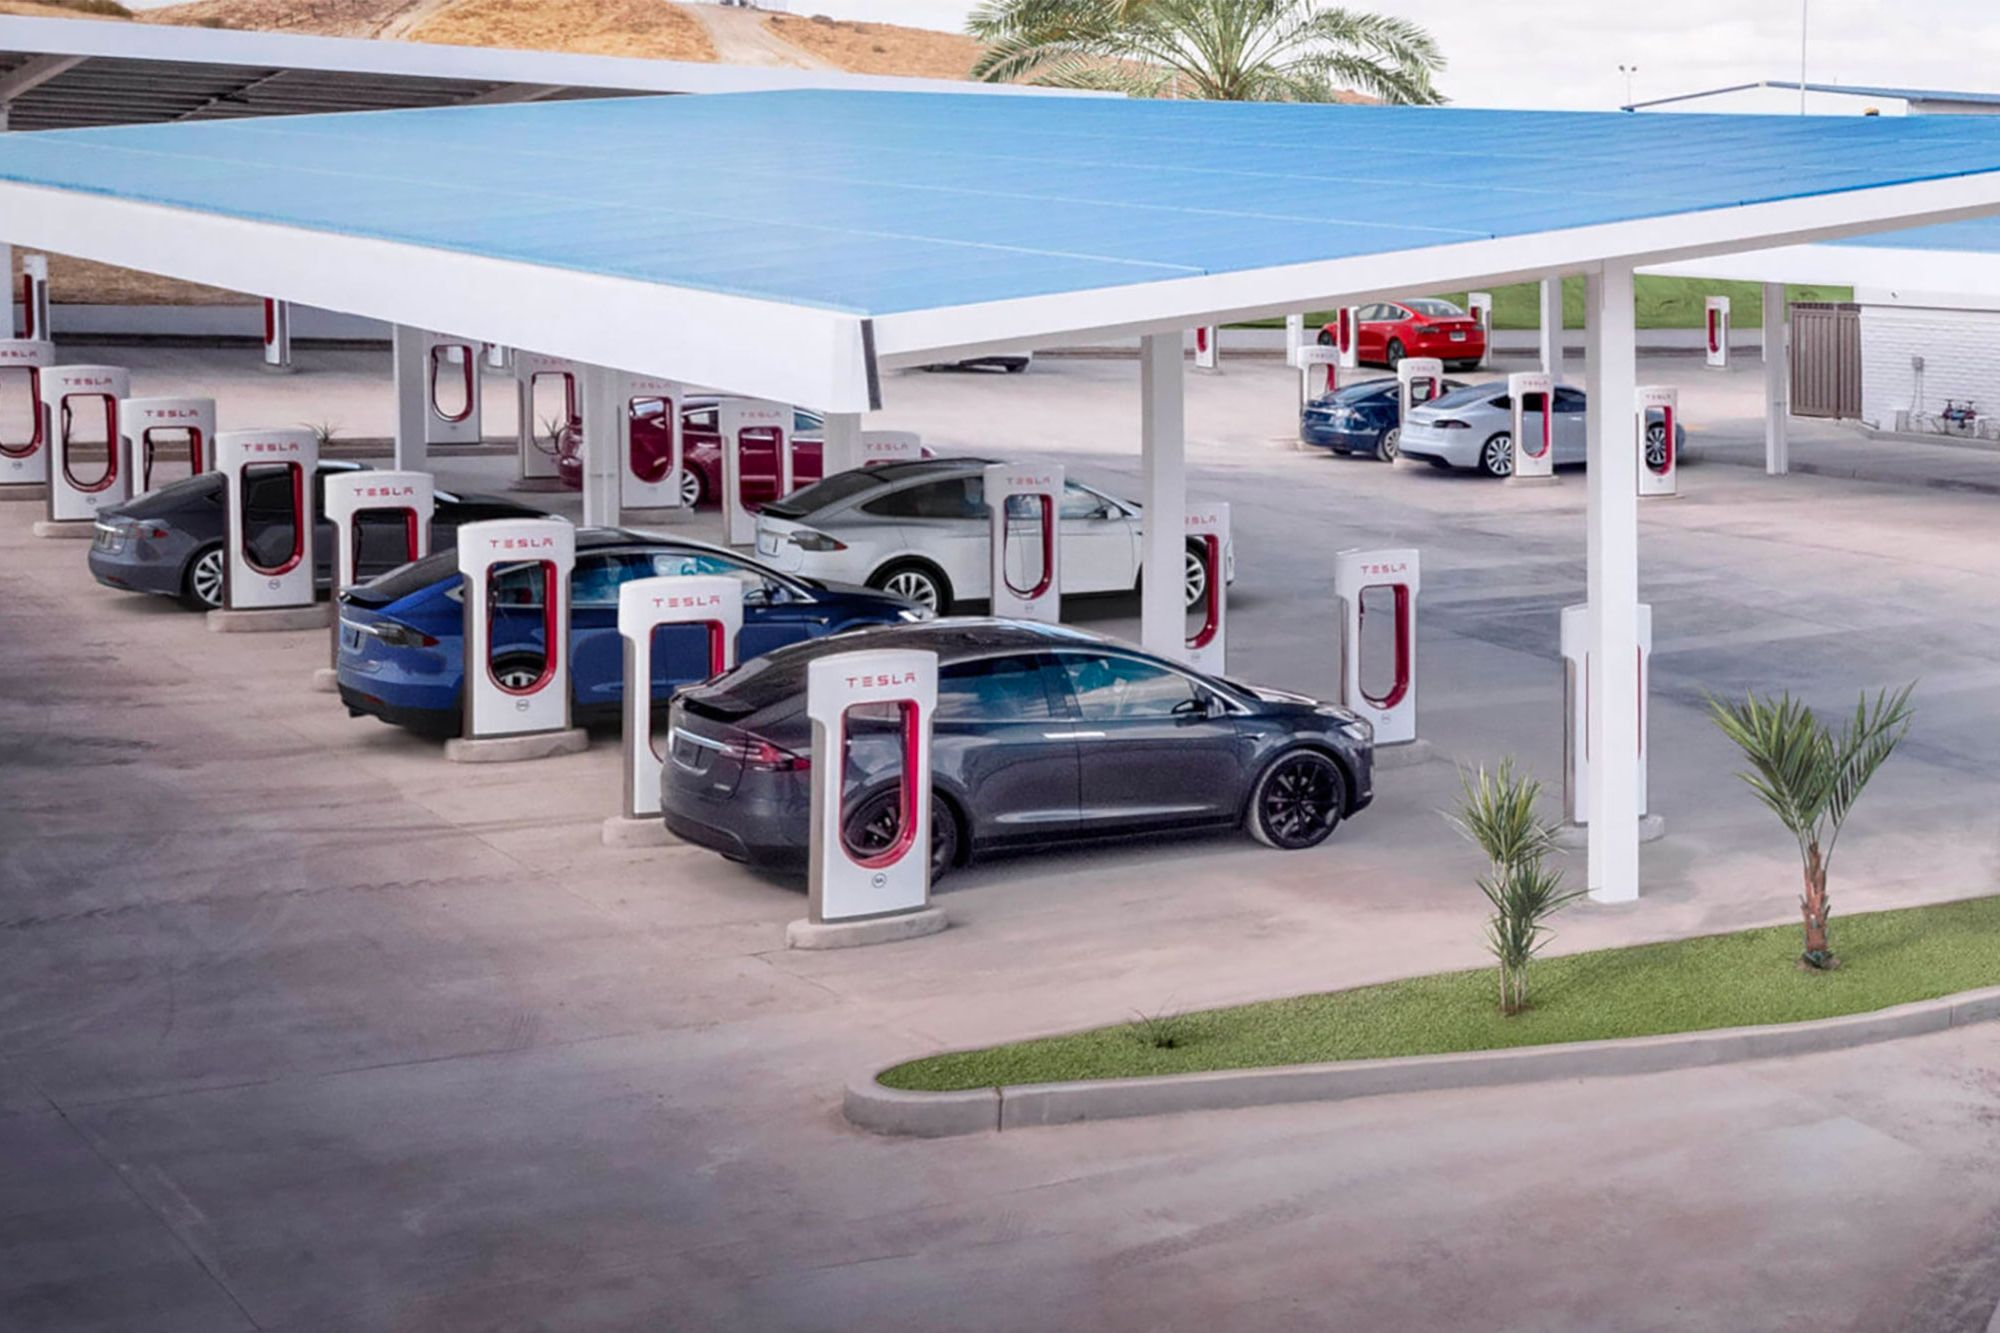 Tesla's Supercharger Network Will Cover All of Europe in 2019